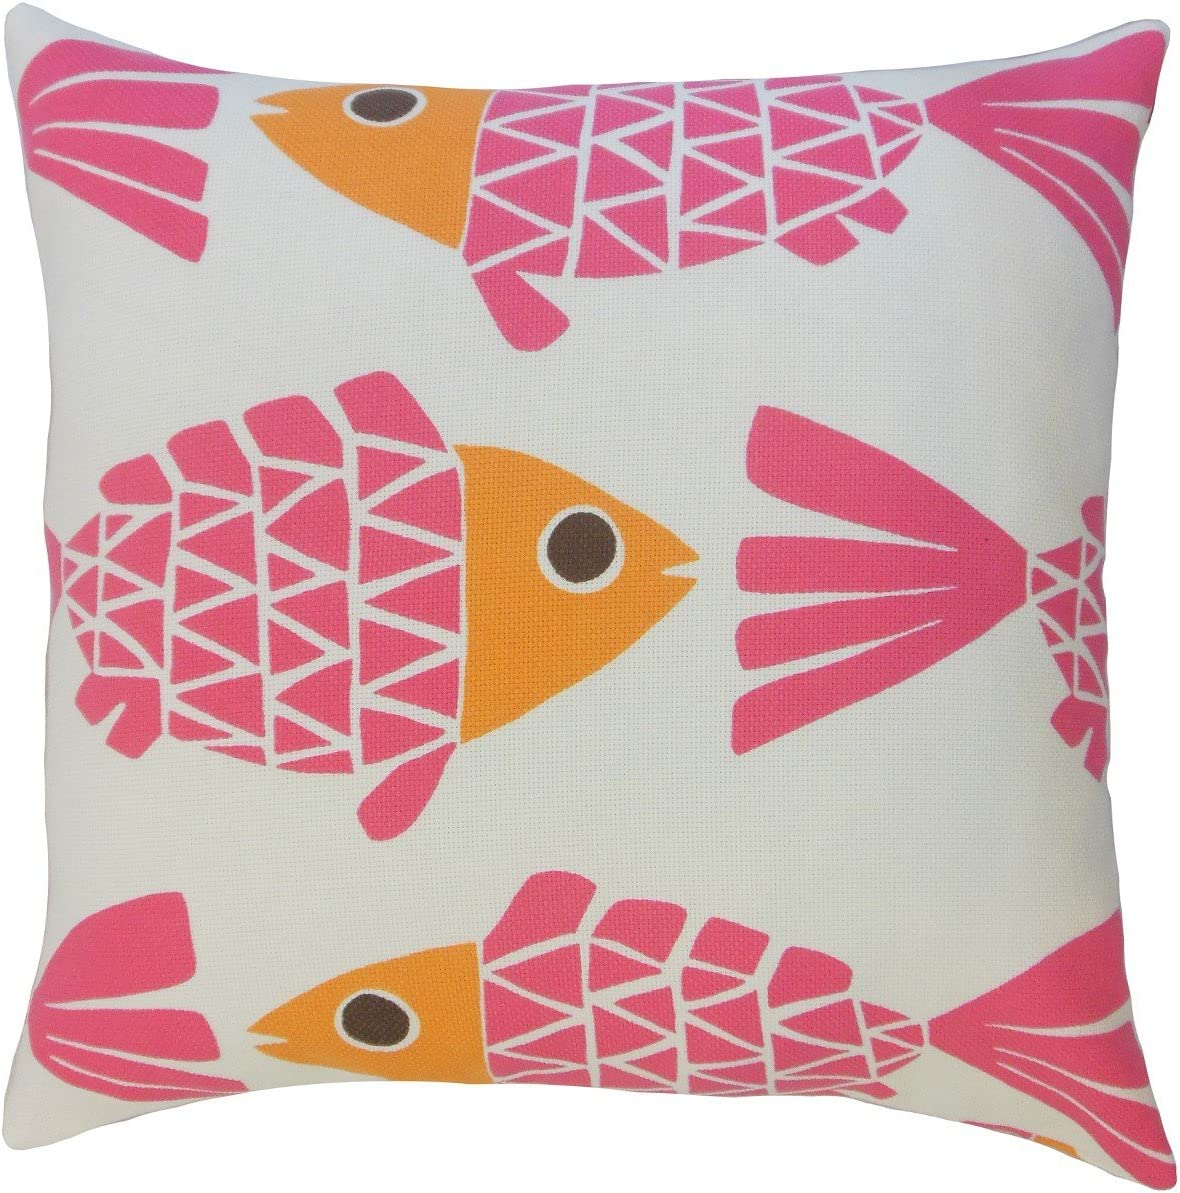 Amazon Com The Pillow Collection P18 Ft 29023 Pink Out Valmai Graphic Pillow Pink Home Kitchen